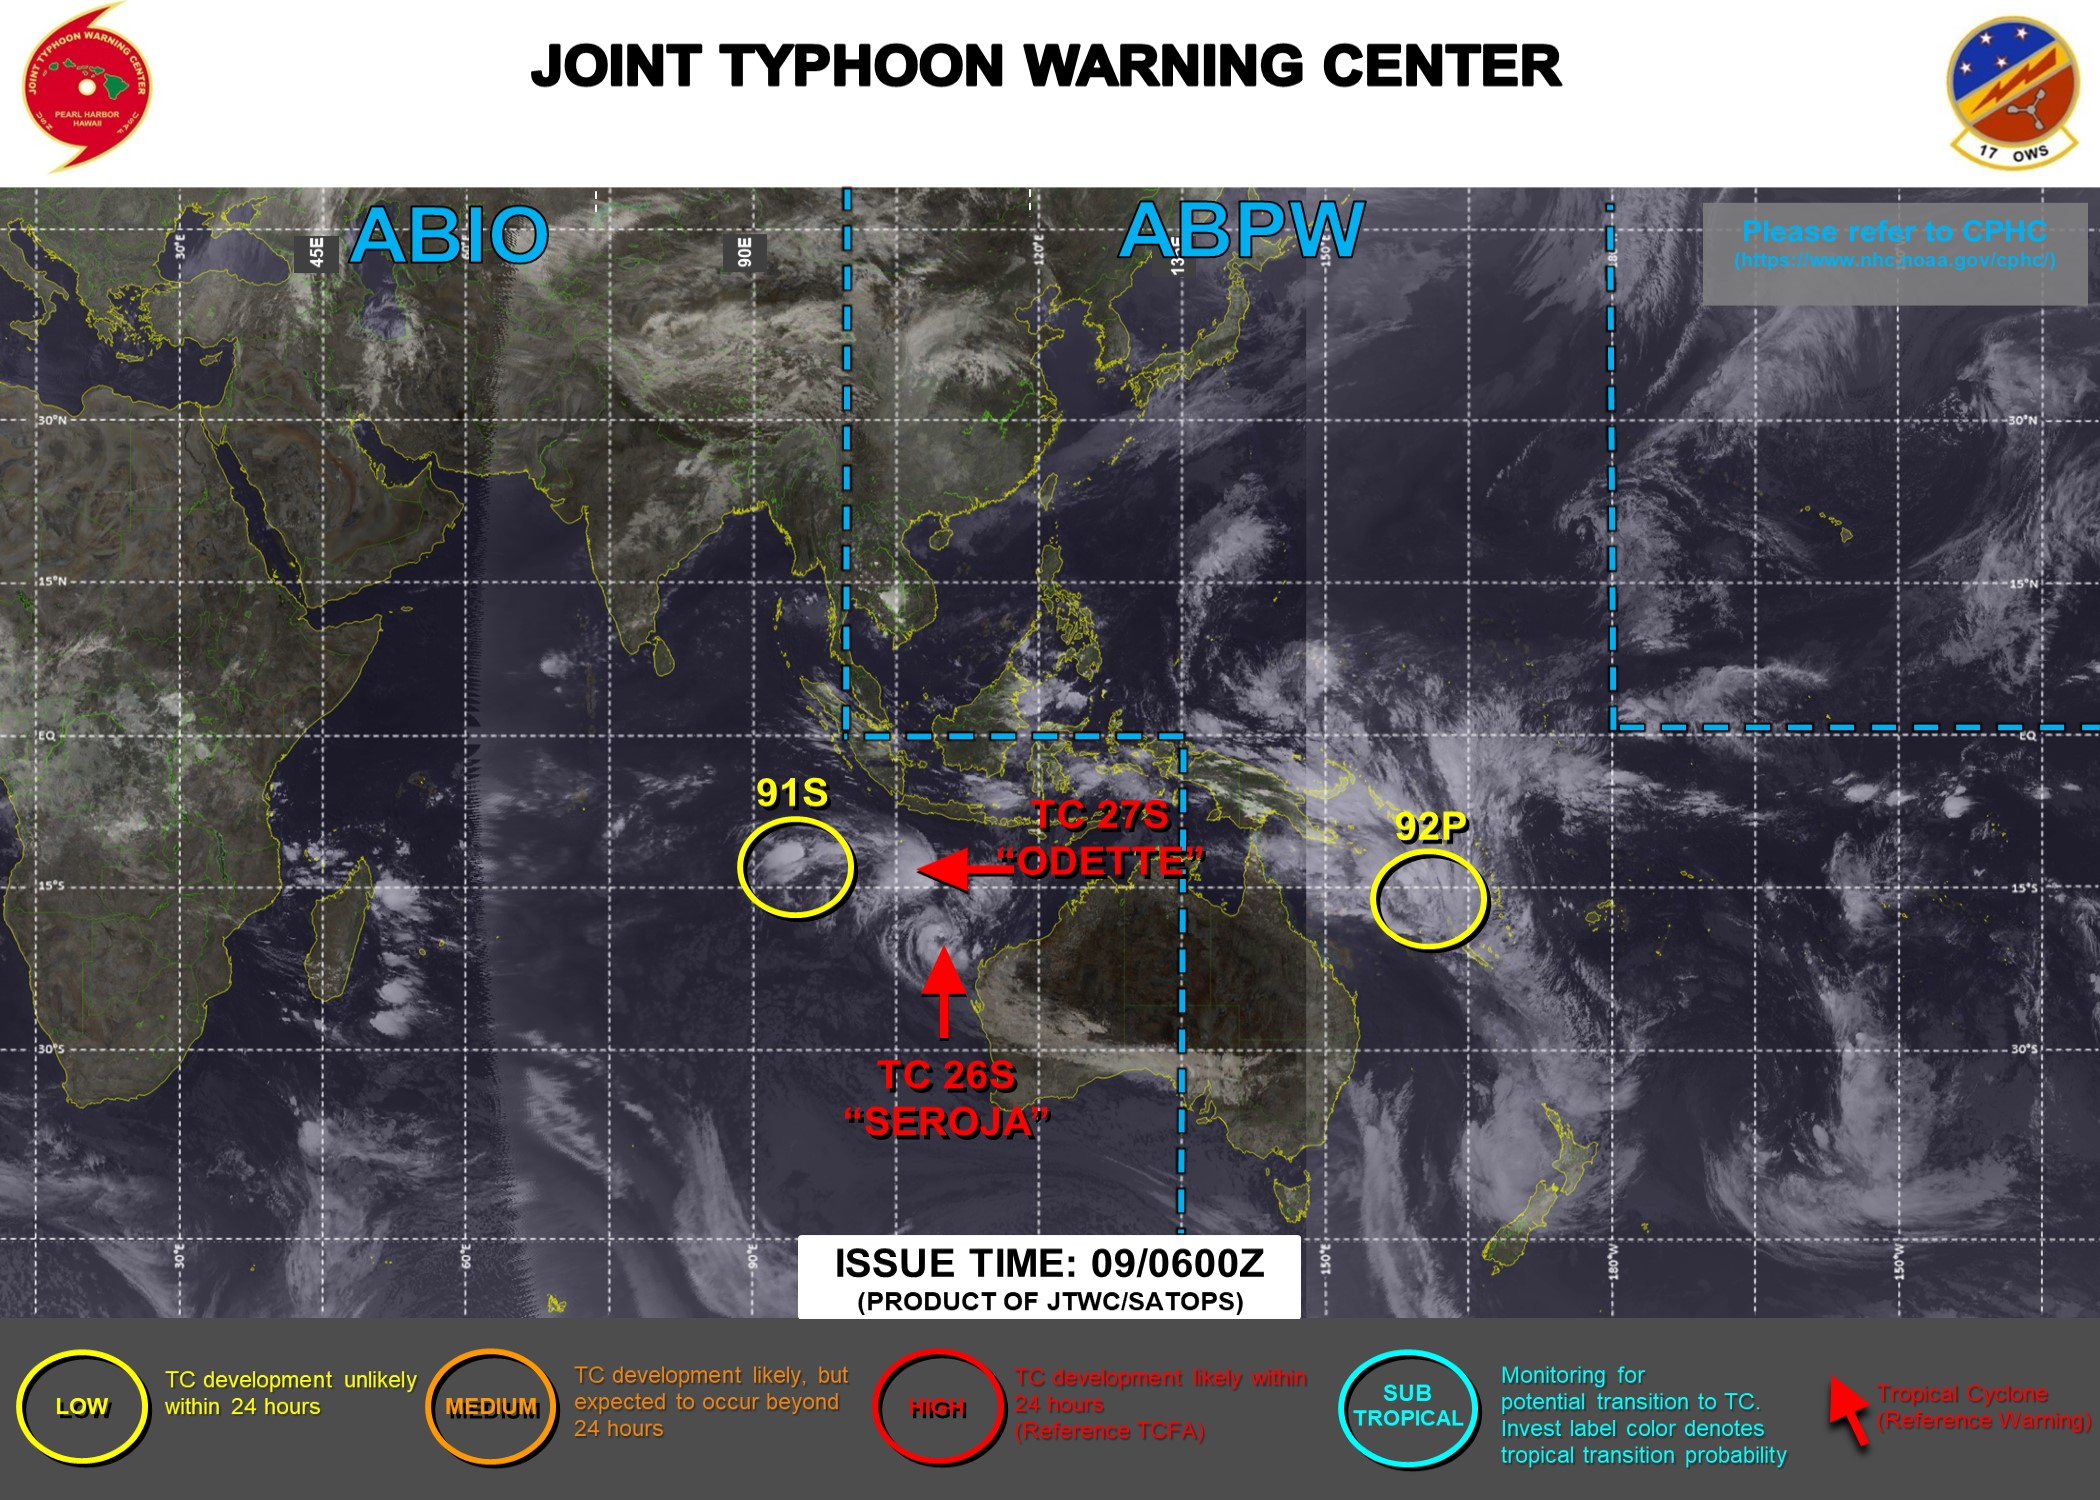 09/09UTC. JTWC IS ISSUING 6HOURLY WARNINGS ON 26S(SEROJA) AND 27S( ODETTE). 3HOURLY SATELLITE BULLETINS ARE ISSUED FOR THE FOUR SYSTEMS.